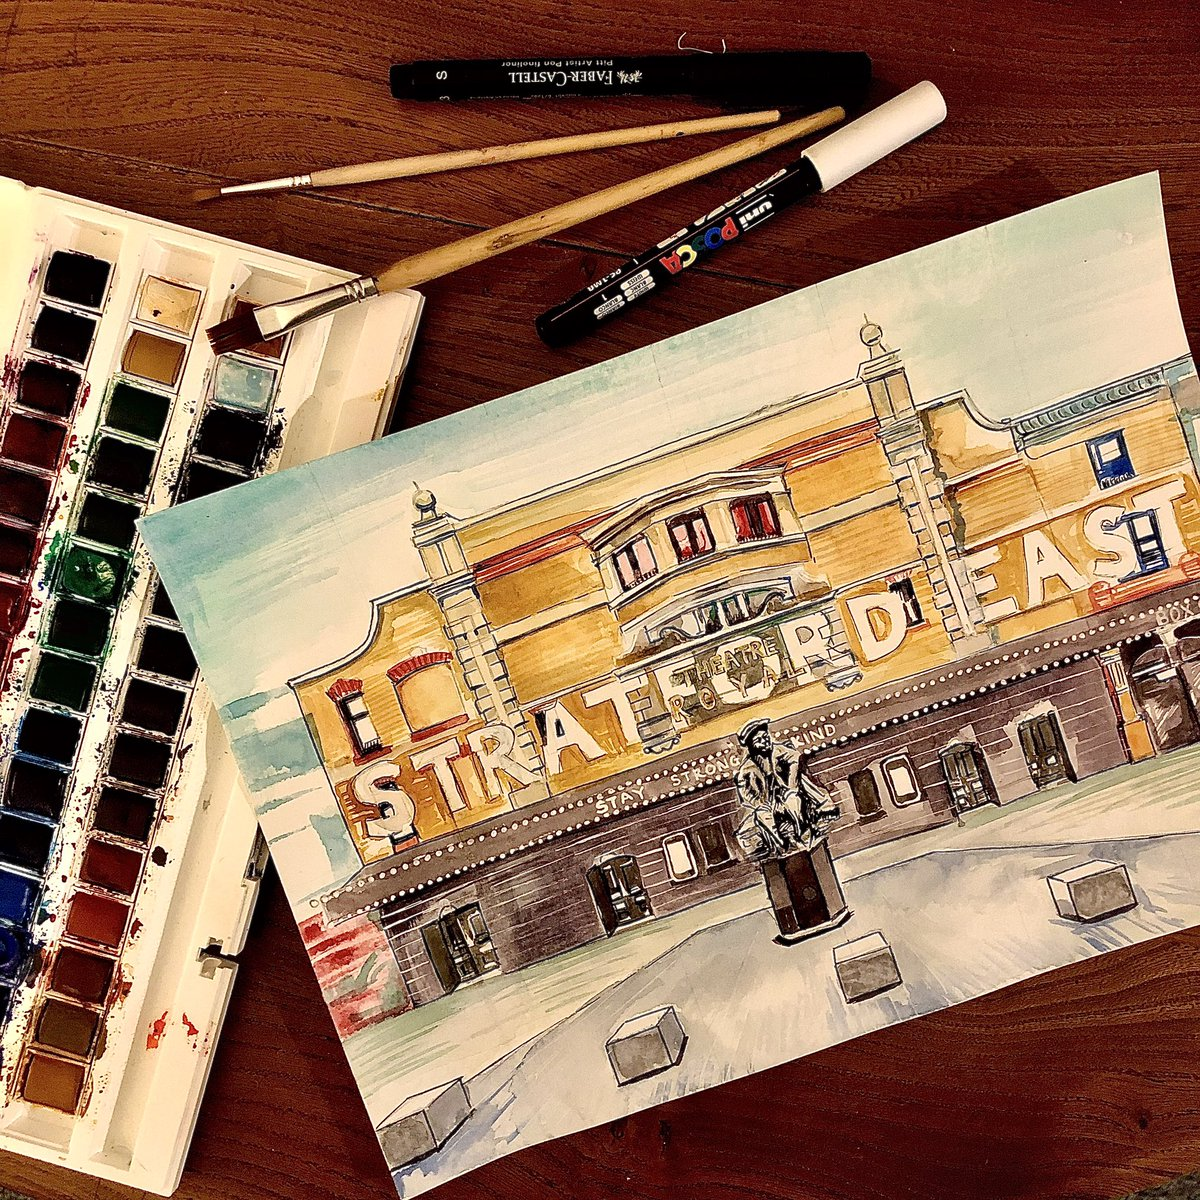 Painting of @stratfordeast I did today. Watercolour and fineliner. Part of a new series i'm producing of my favourite theatres. Miss this place. Hope everyone there is doing okay. pic.twitter.com/2nvQo1Hvz8